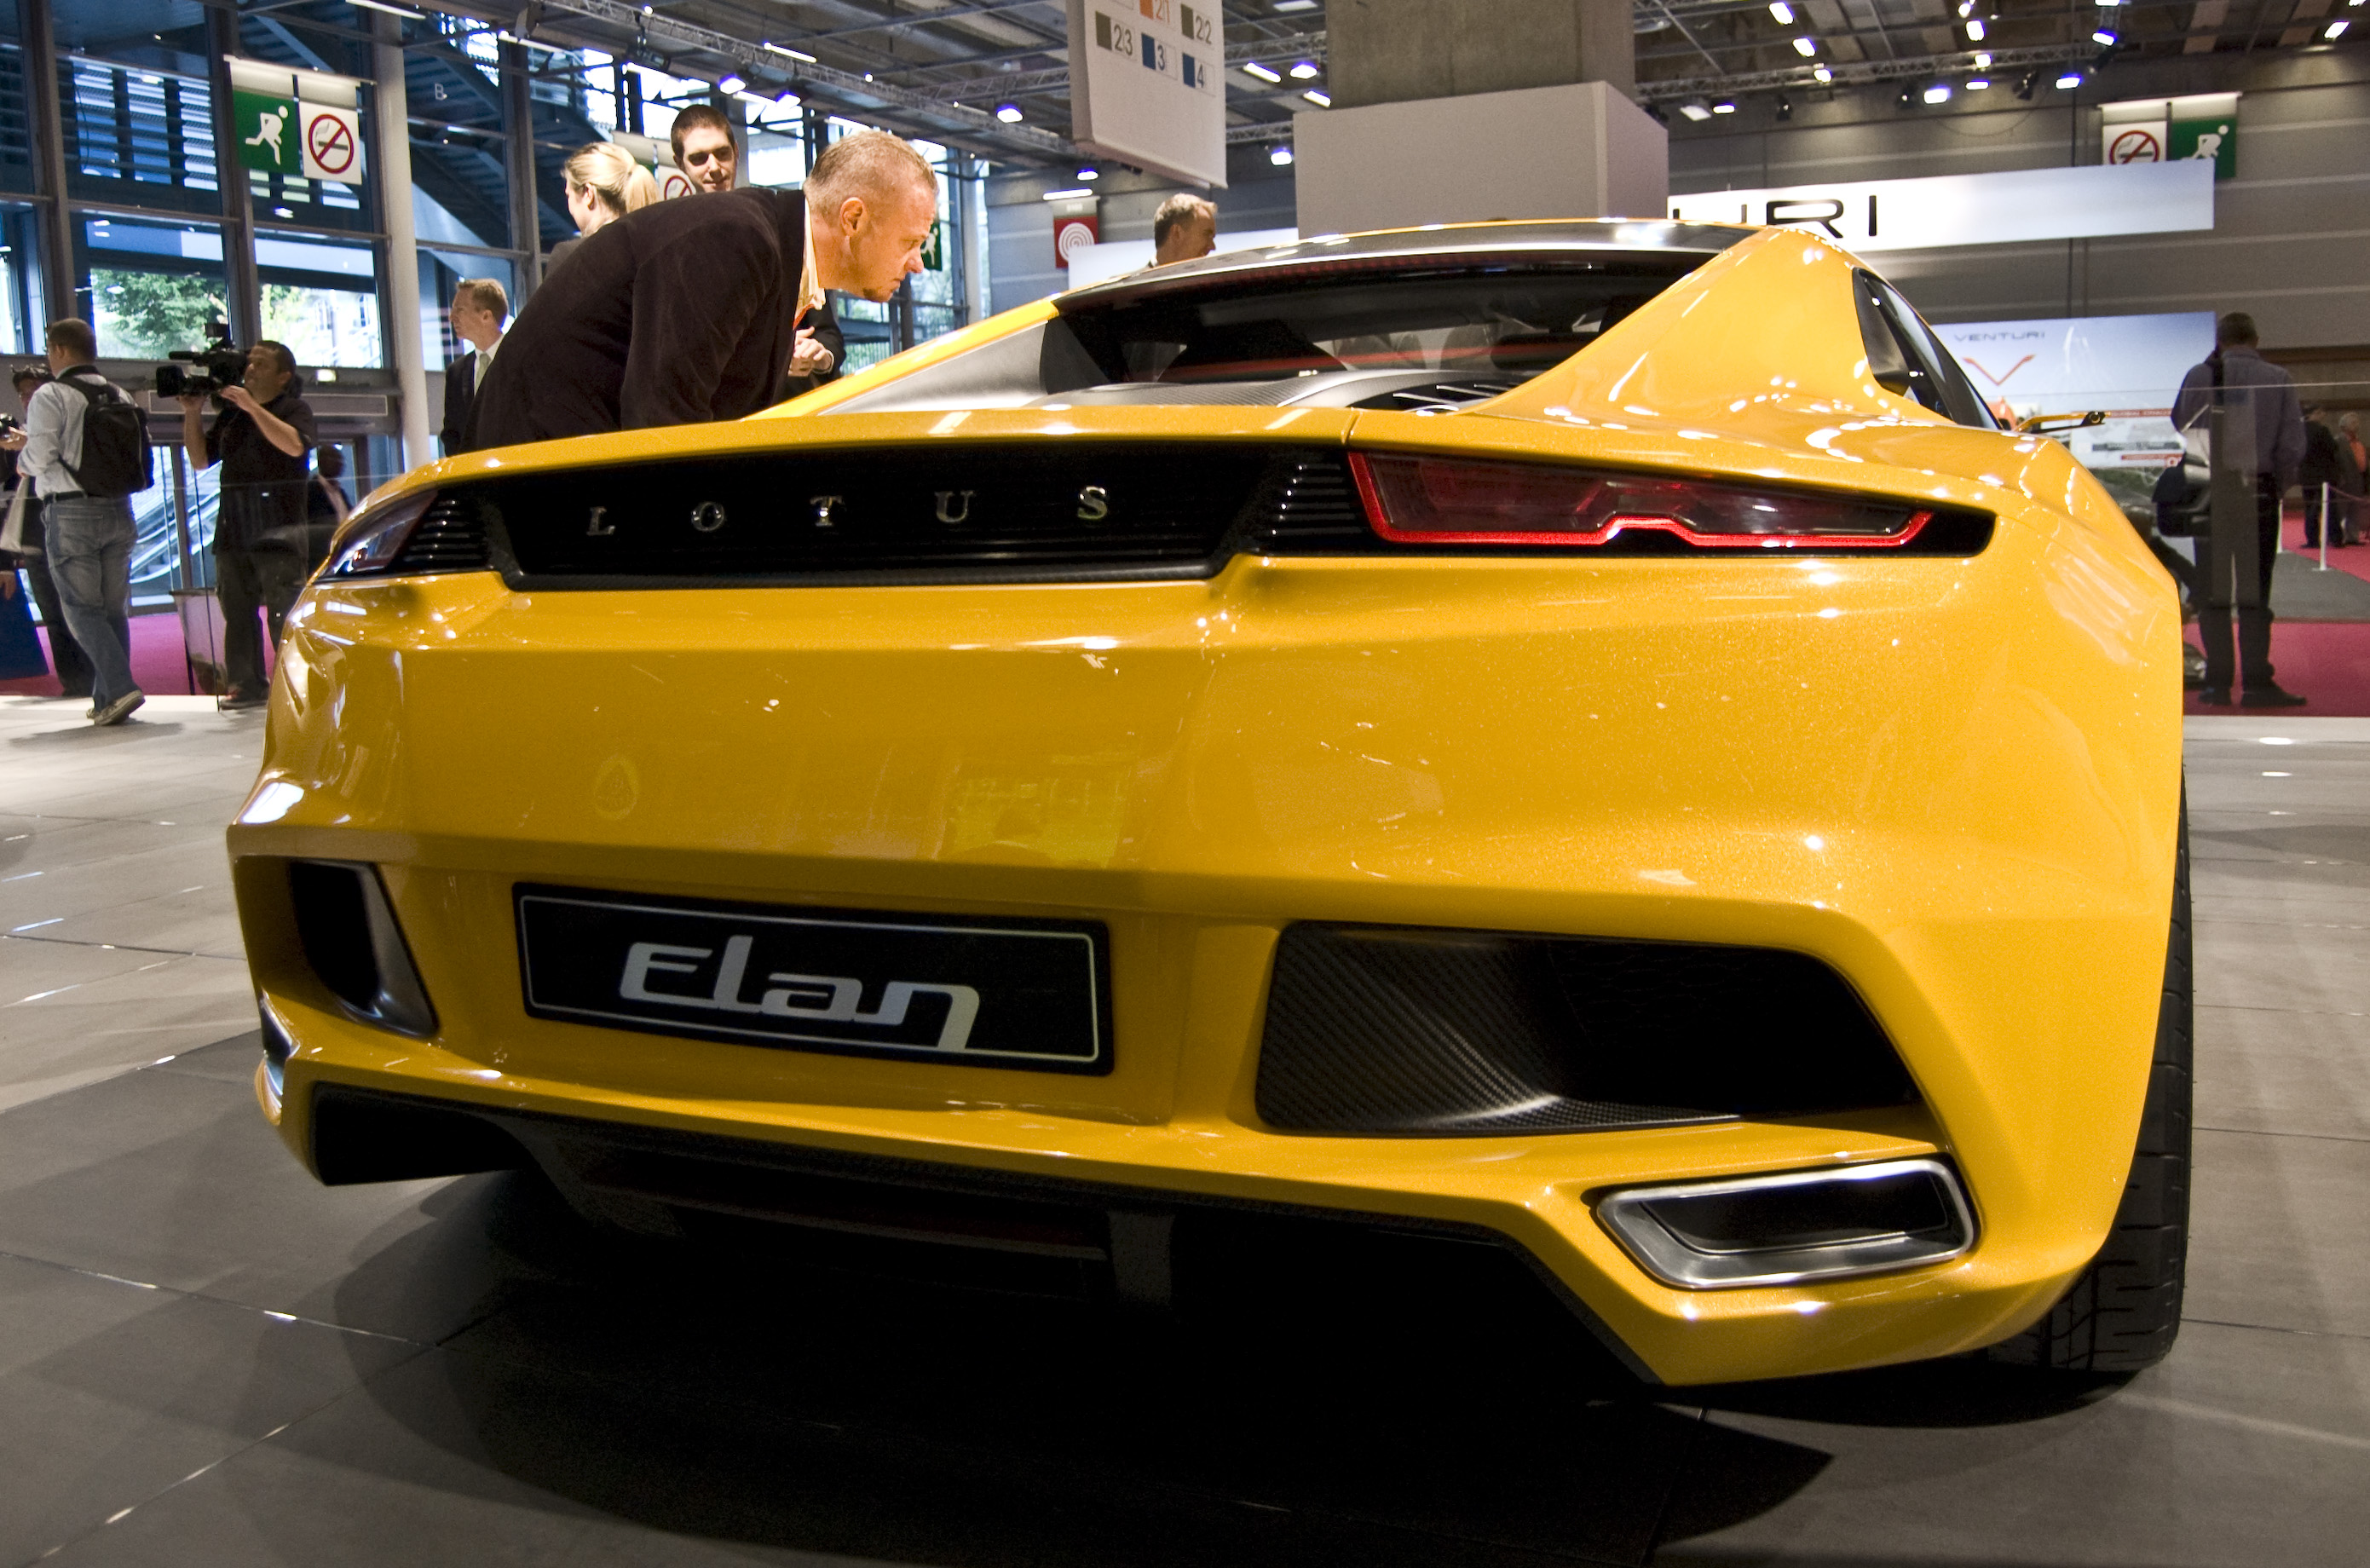 File:Lotus Elan Concept - Flickr - David Villarreal Fernández (4 ...